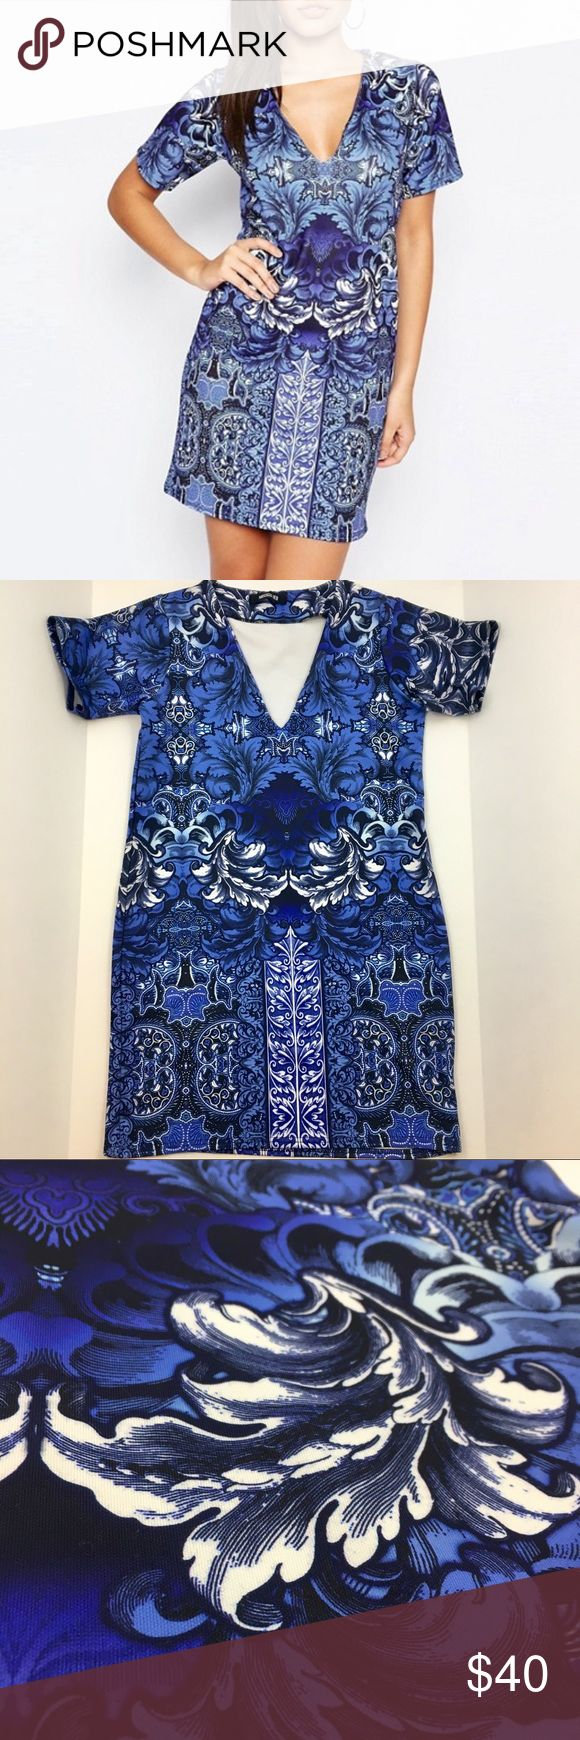 """NWT Missguided Blue Tile Print Pattern Dress Gorgeous and brand new dress that's the perfect addition to your going-out wardrobe! The print is super fun and the cut of the dress is so flattering. Ask any questions 💕 approx measurements: 18"""" bust, 33.5"""" length Missguided Dresses Mini"""